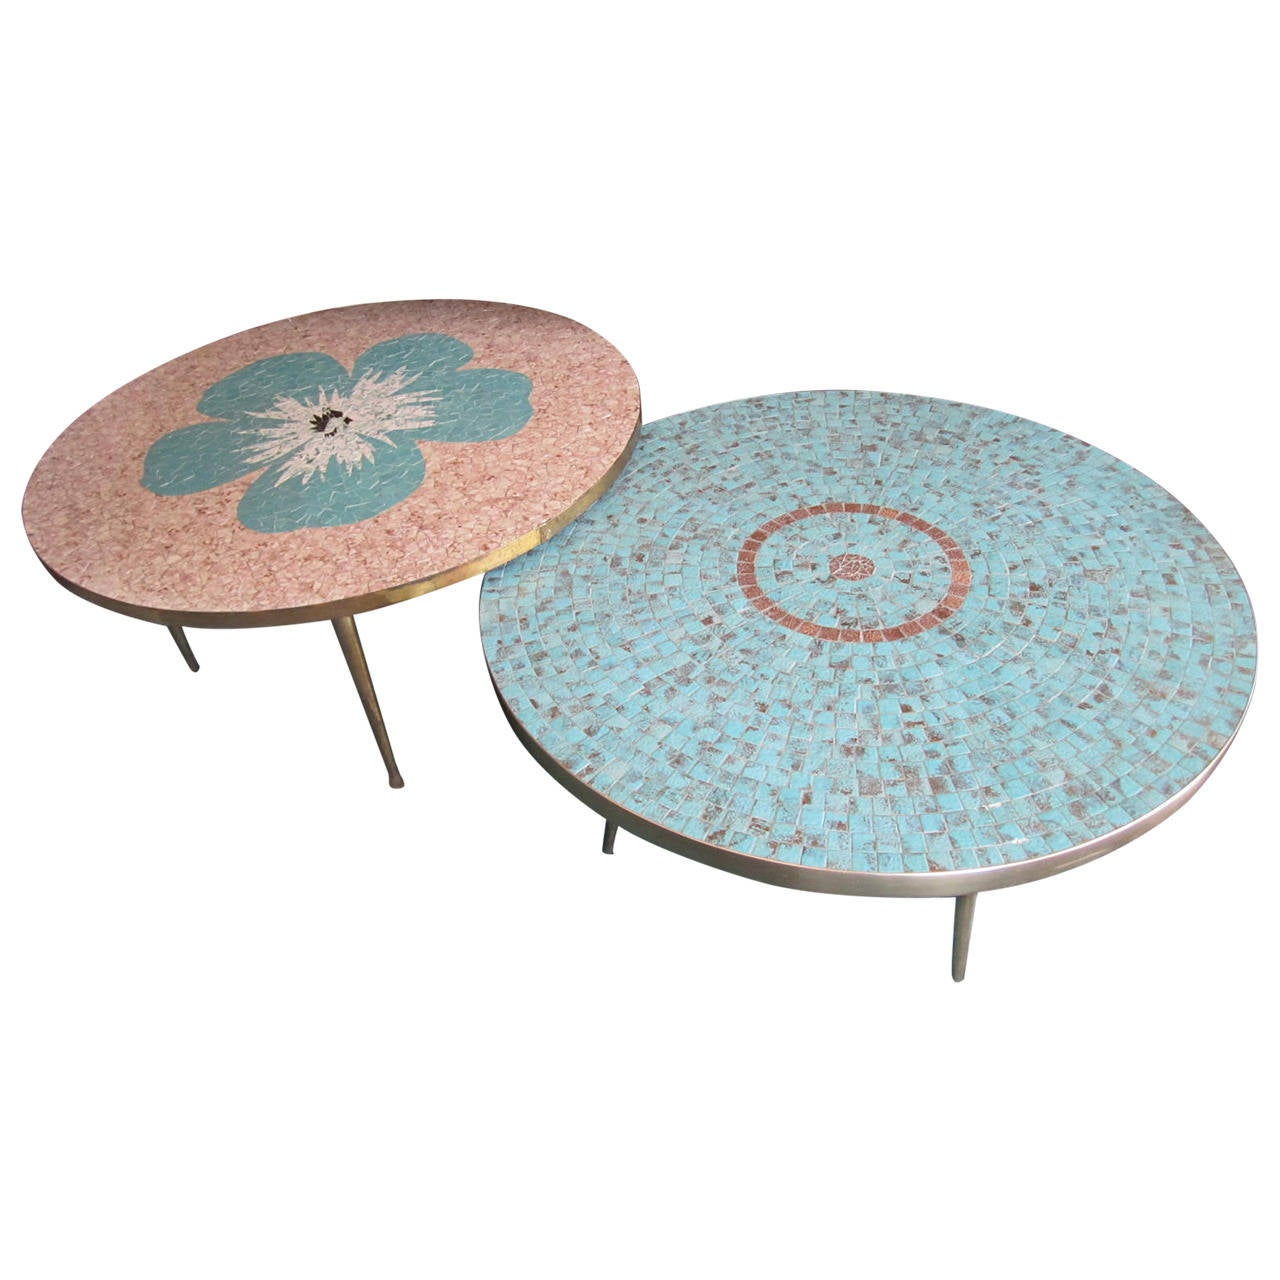 Stunning Mosaic Tile Top Circular Coffee Tables, Mid Century Modern